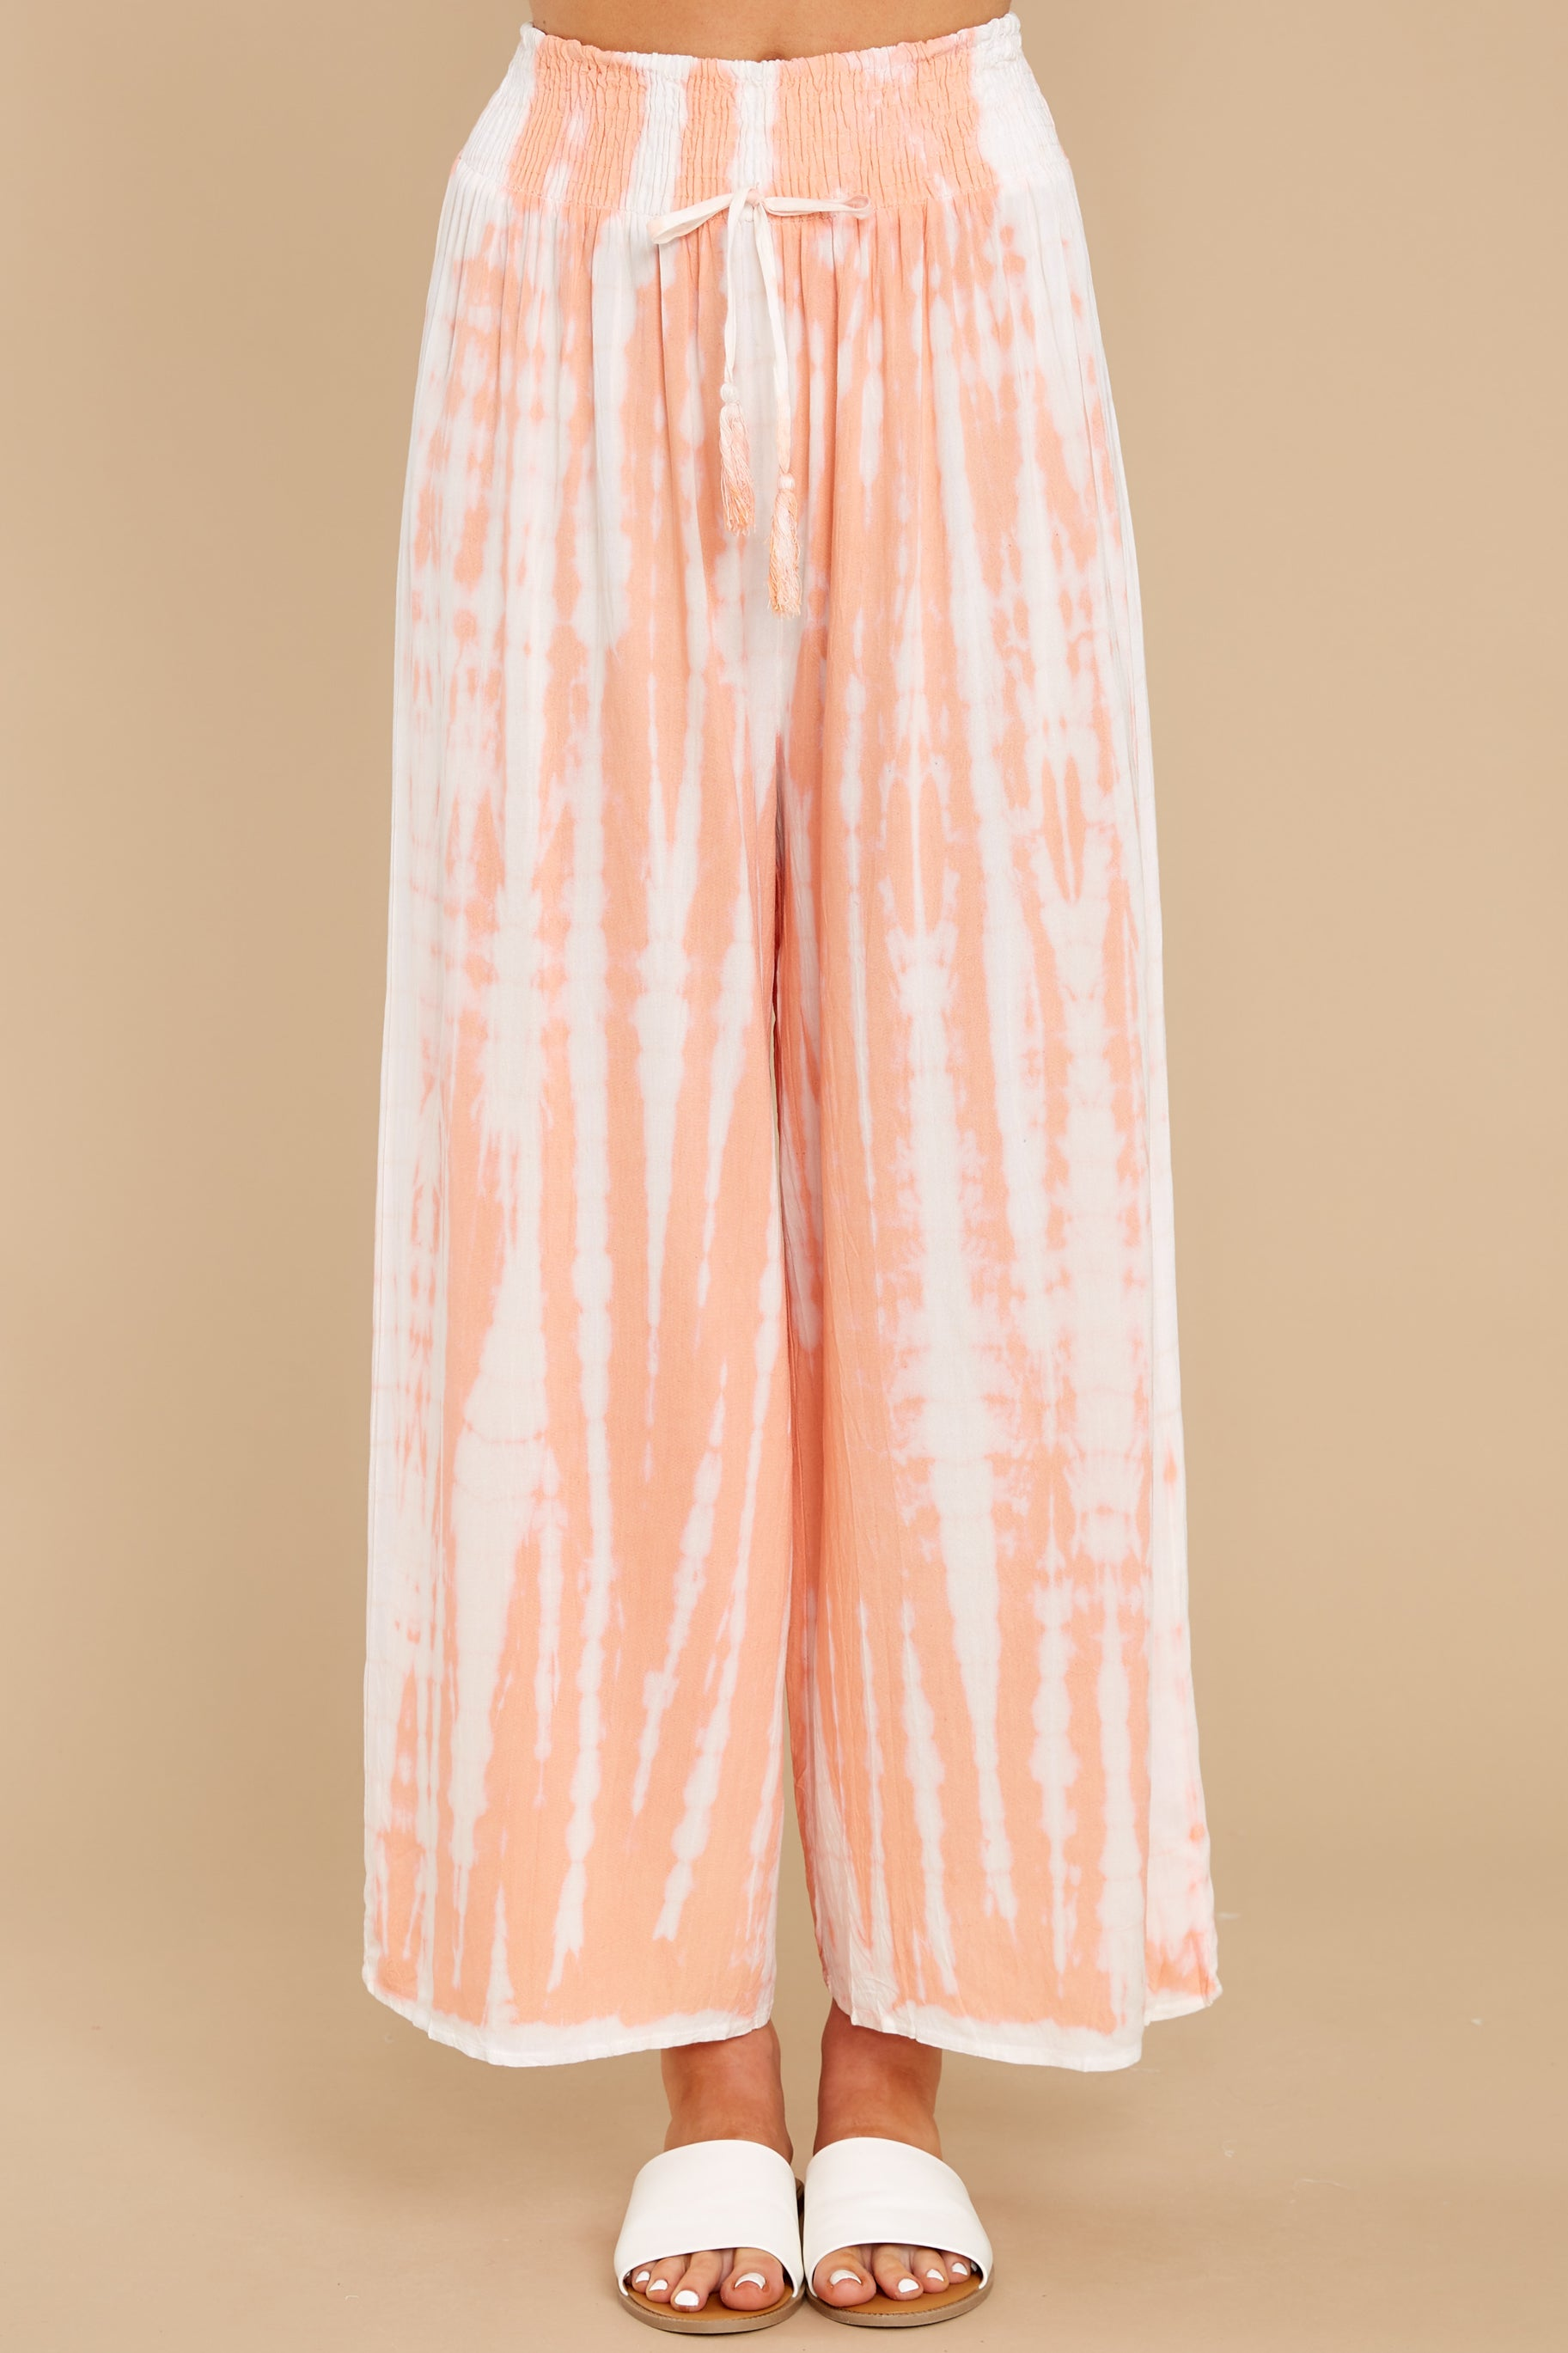 2 All Your Own Peach Tie Dye Pants at reddress.com